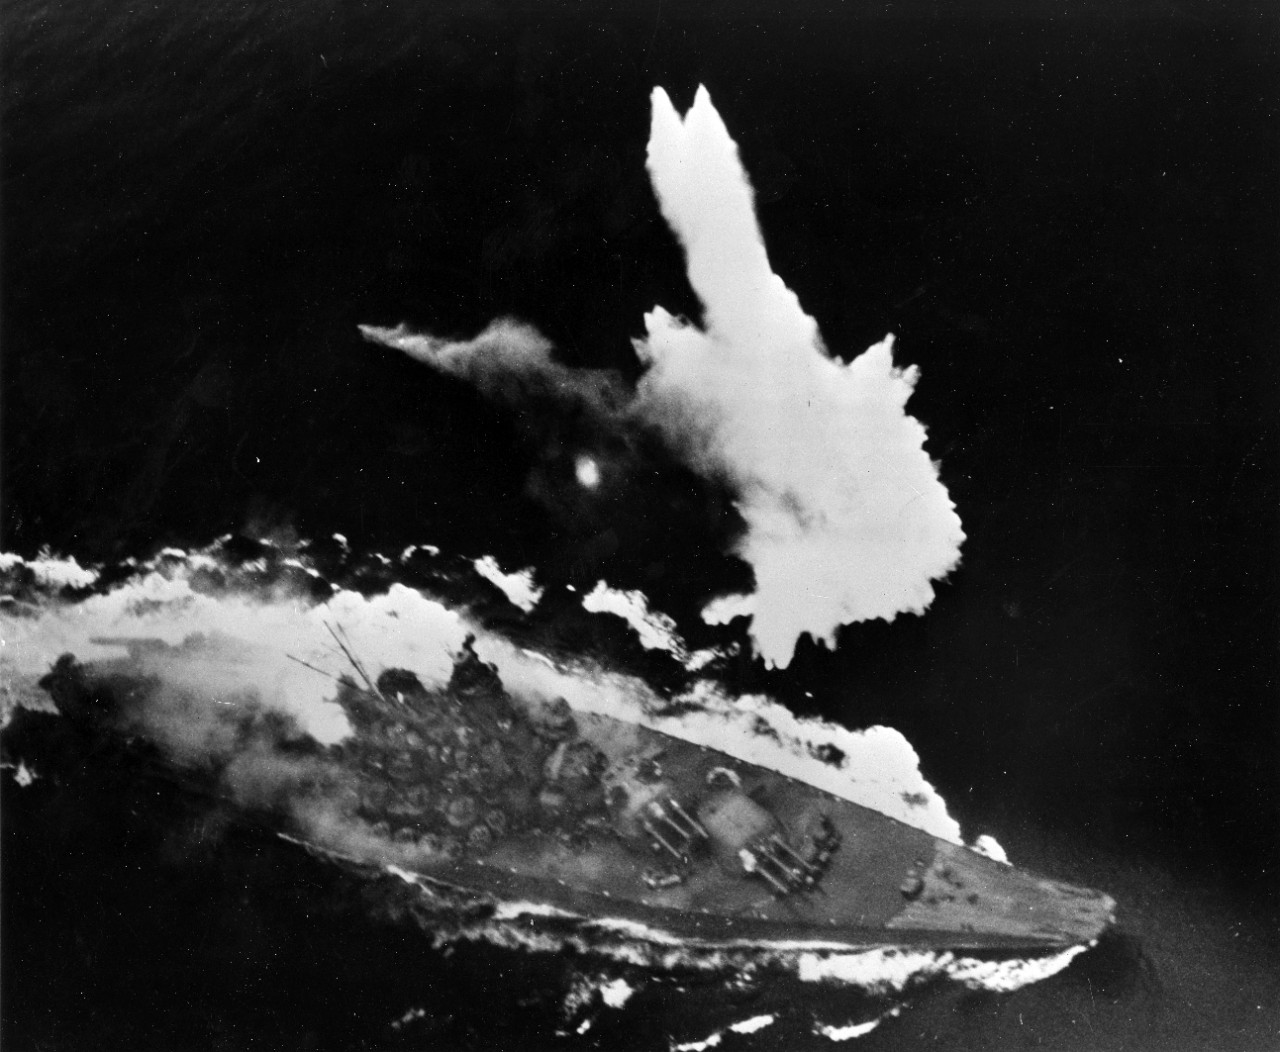 Yamato maneuvers frantically under attack as a bomb explodes off its port side. The fire in the area of the 6.1 inch turret can be clearly seen.